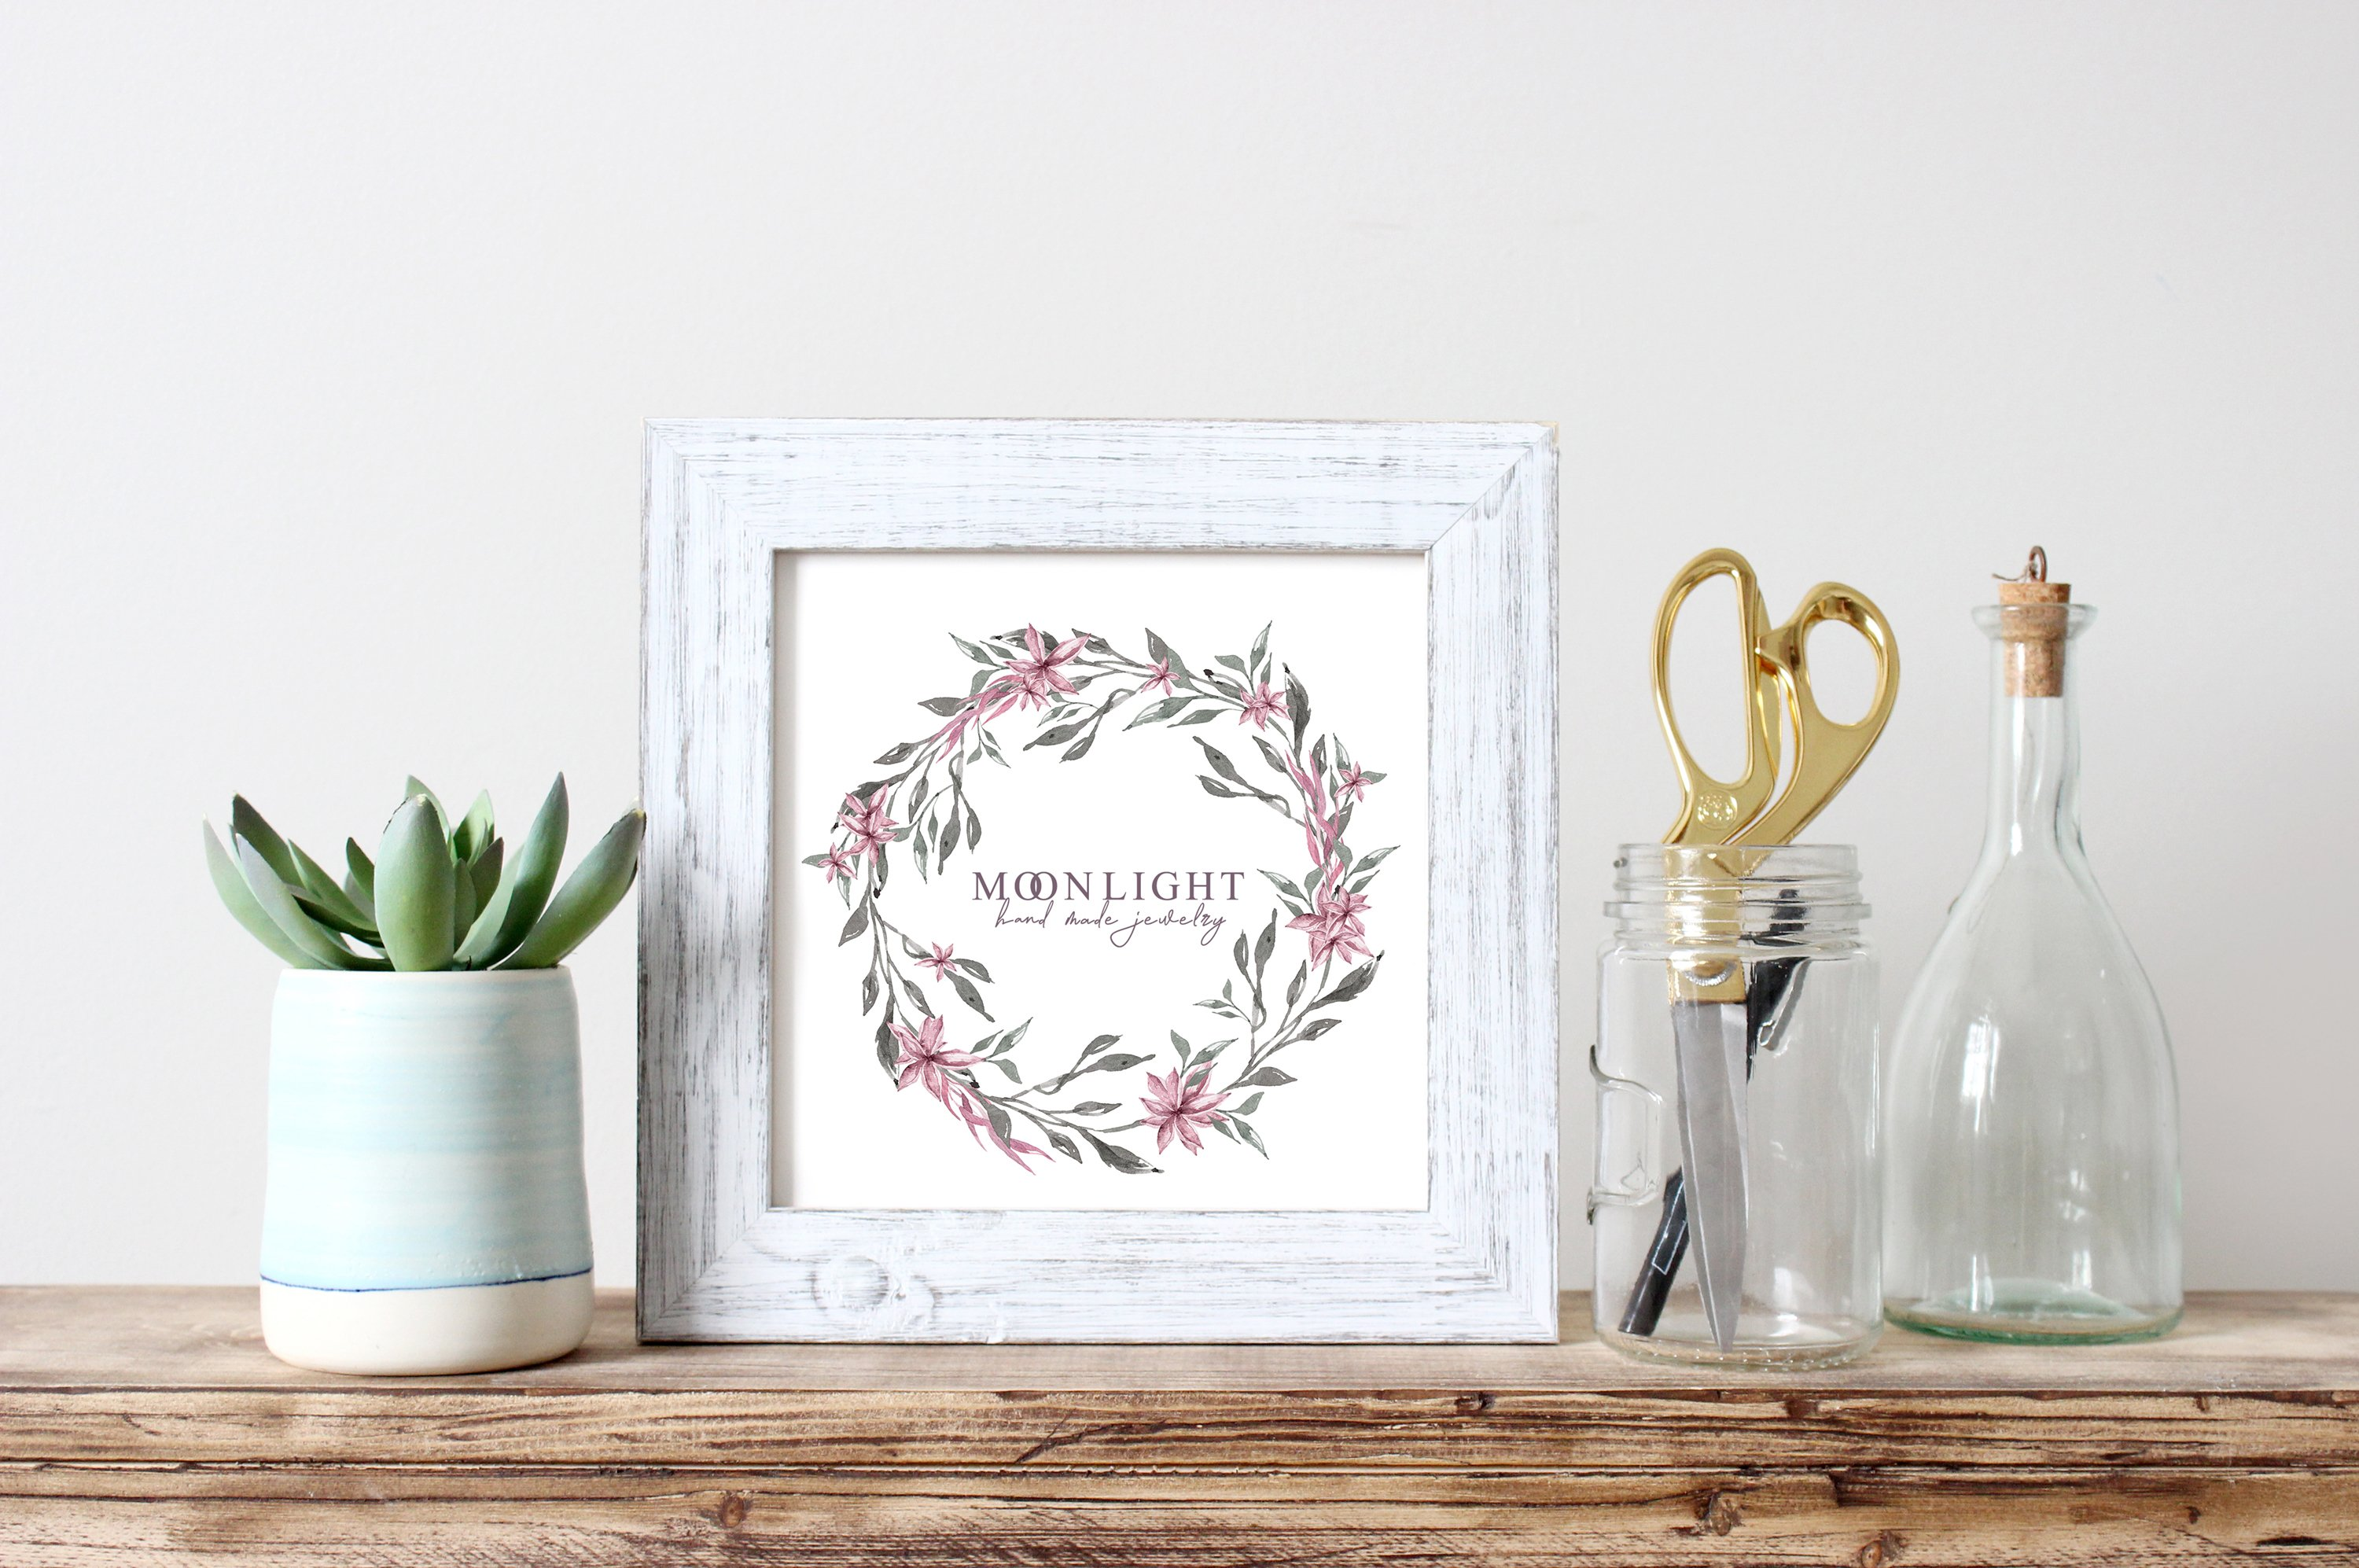 Watercolor floral wreath clipart example image 3